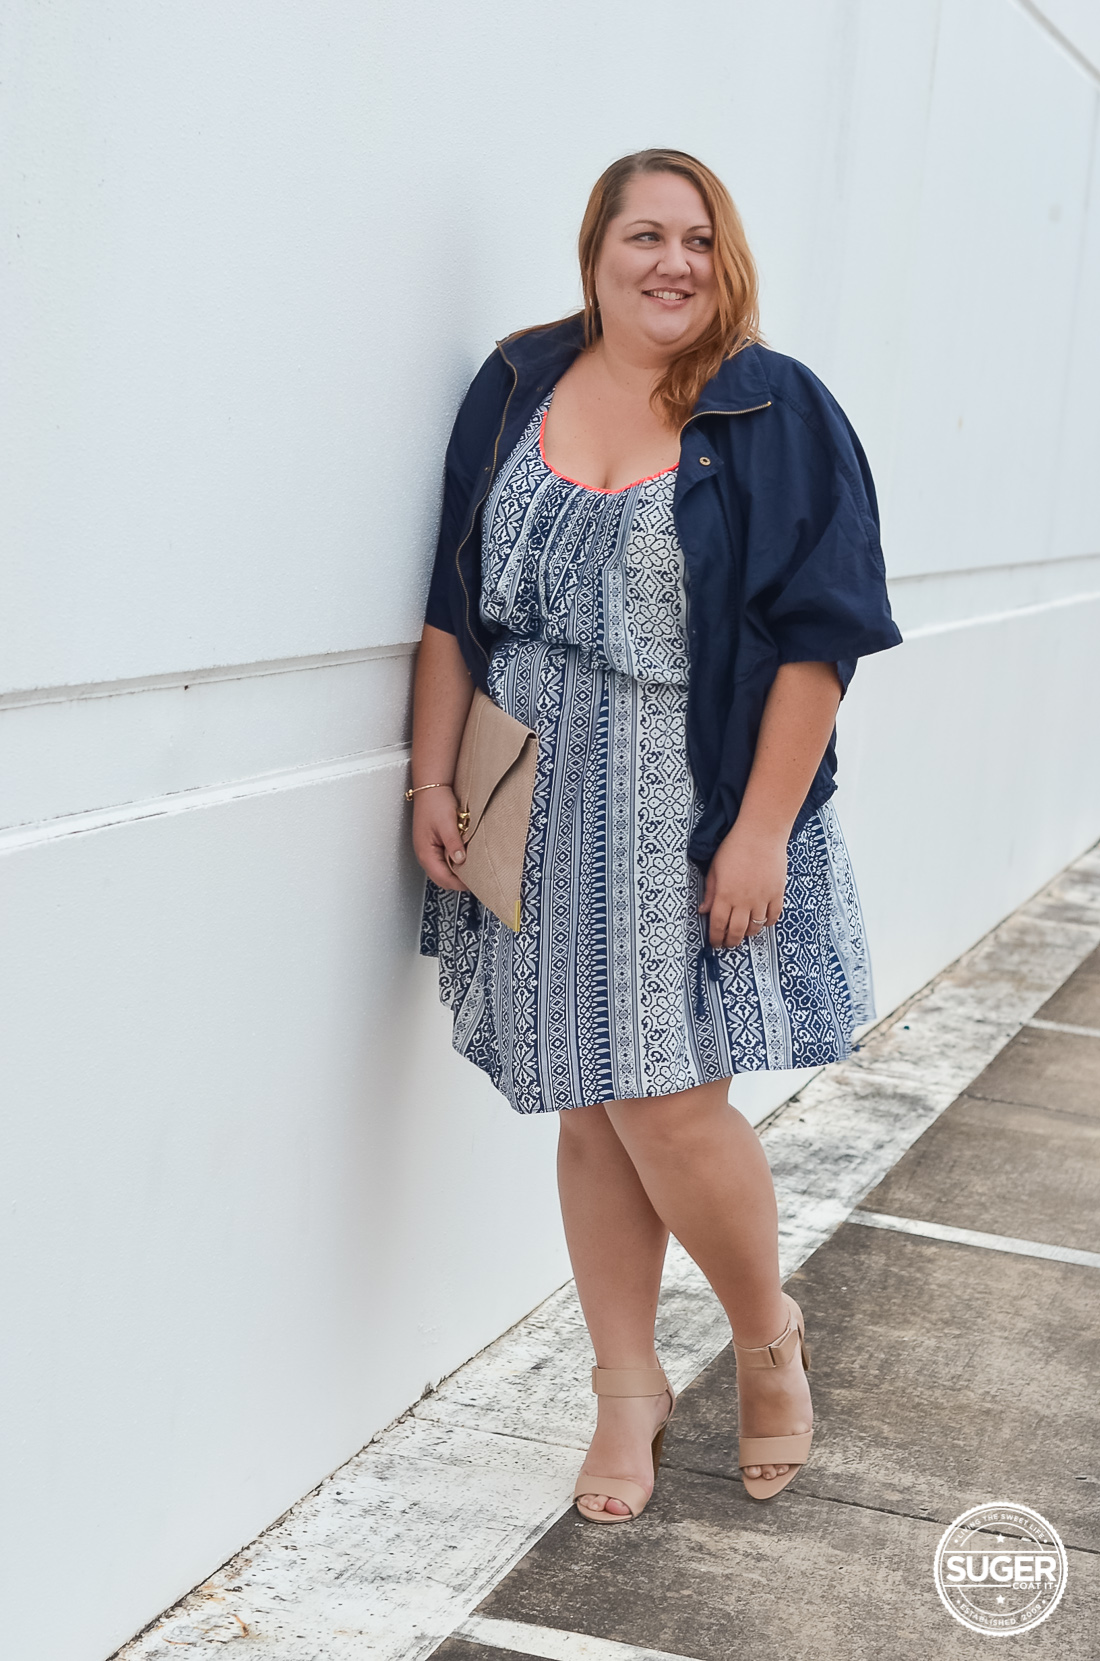 beme australia plus size fashion blogger review-9